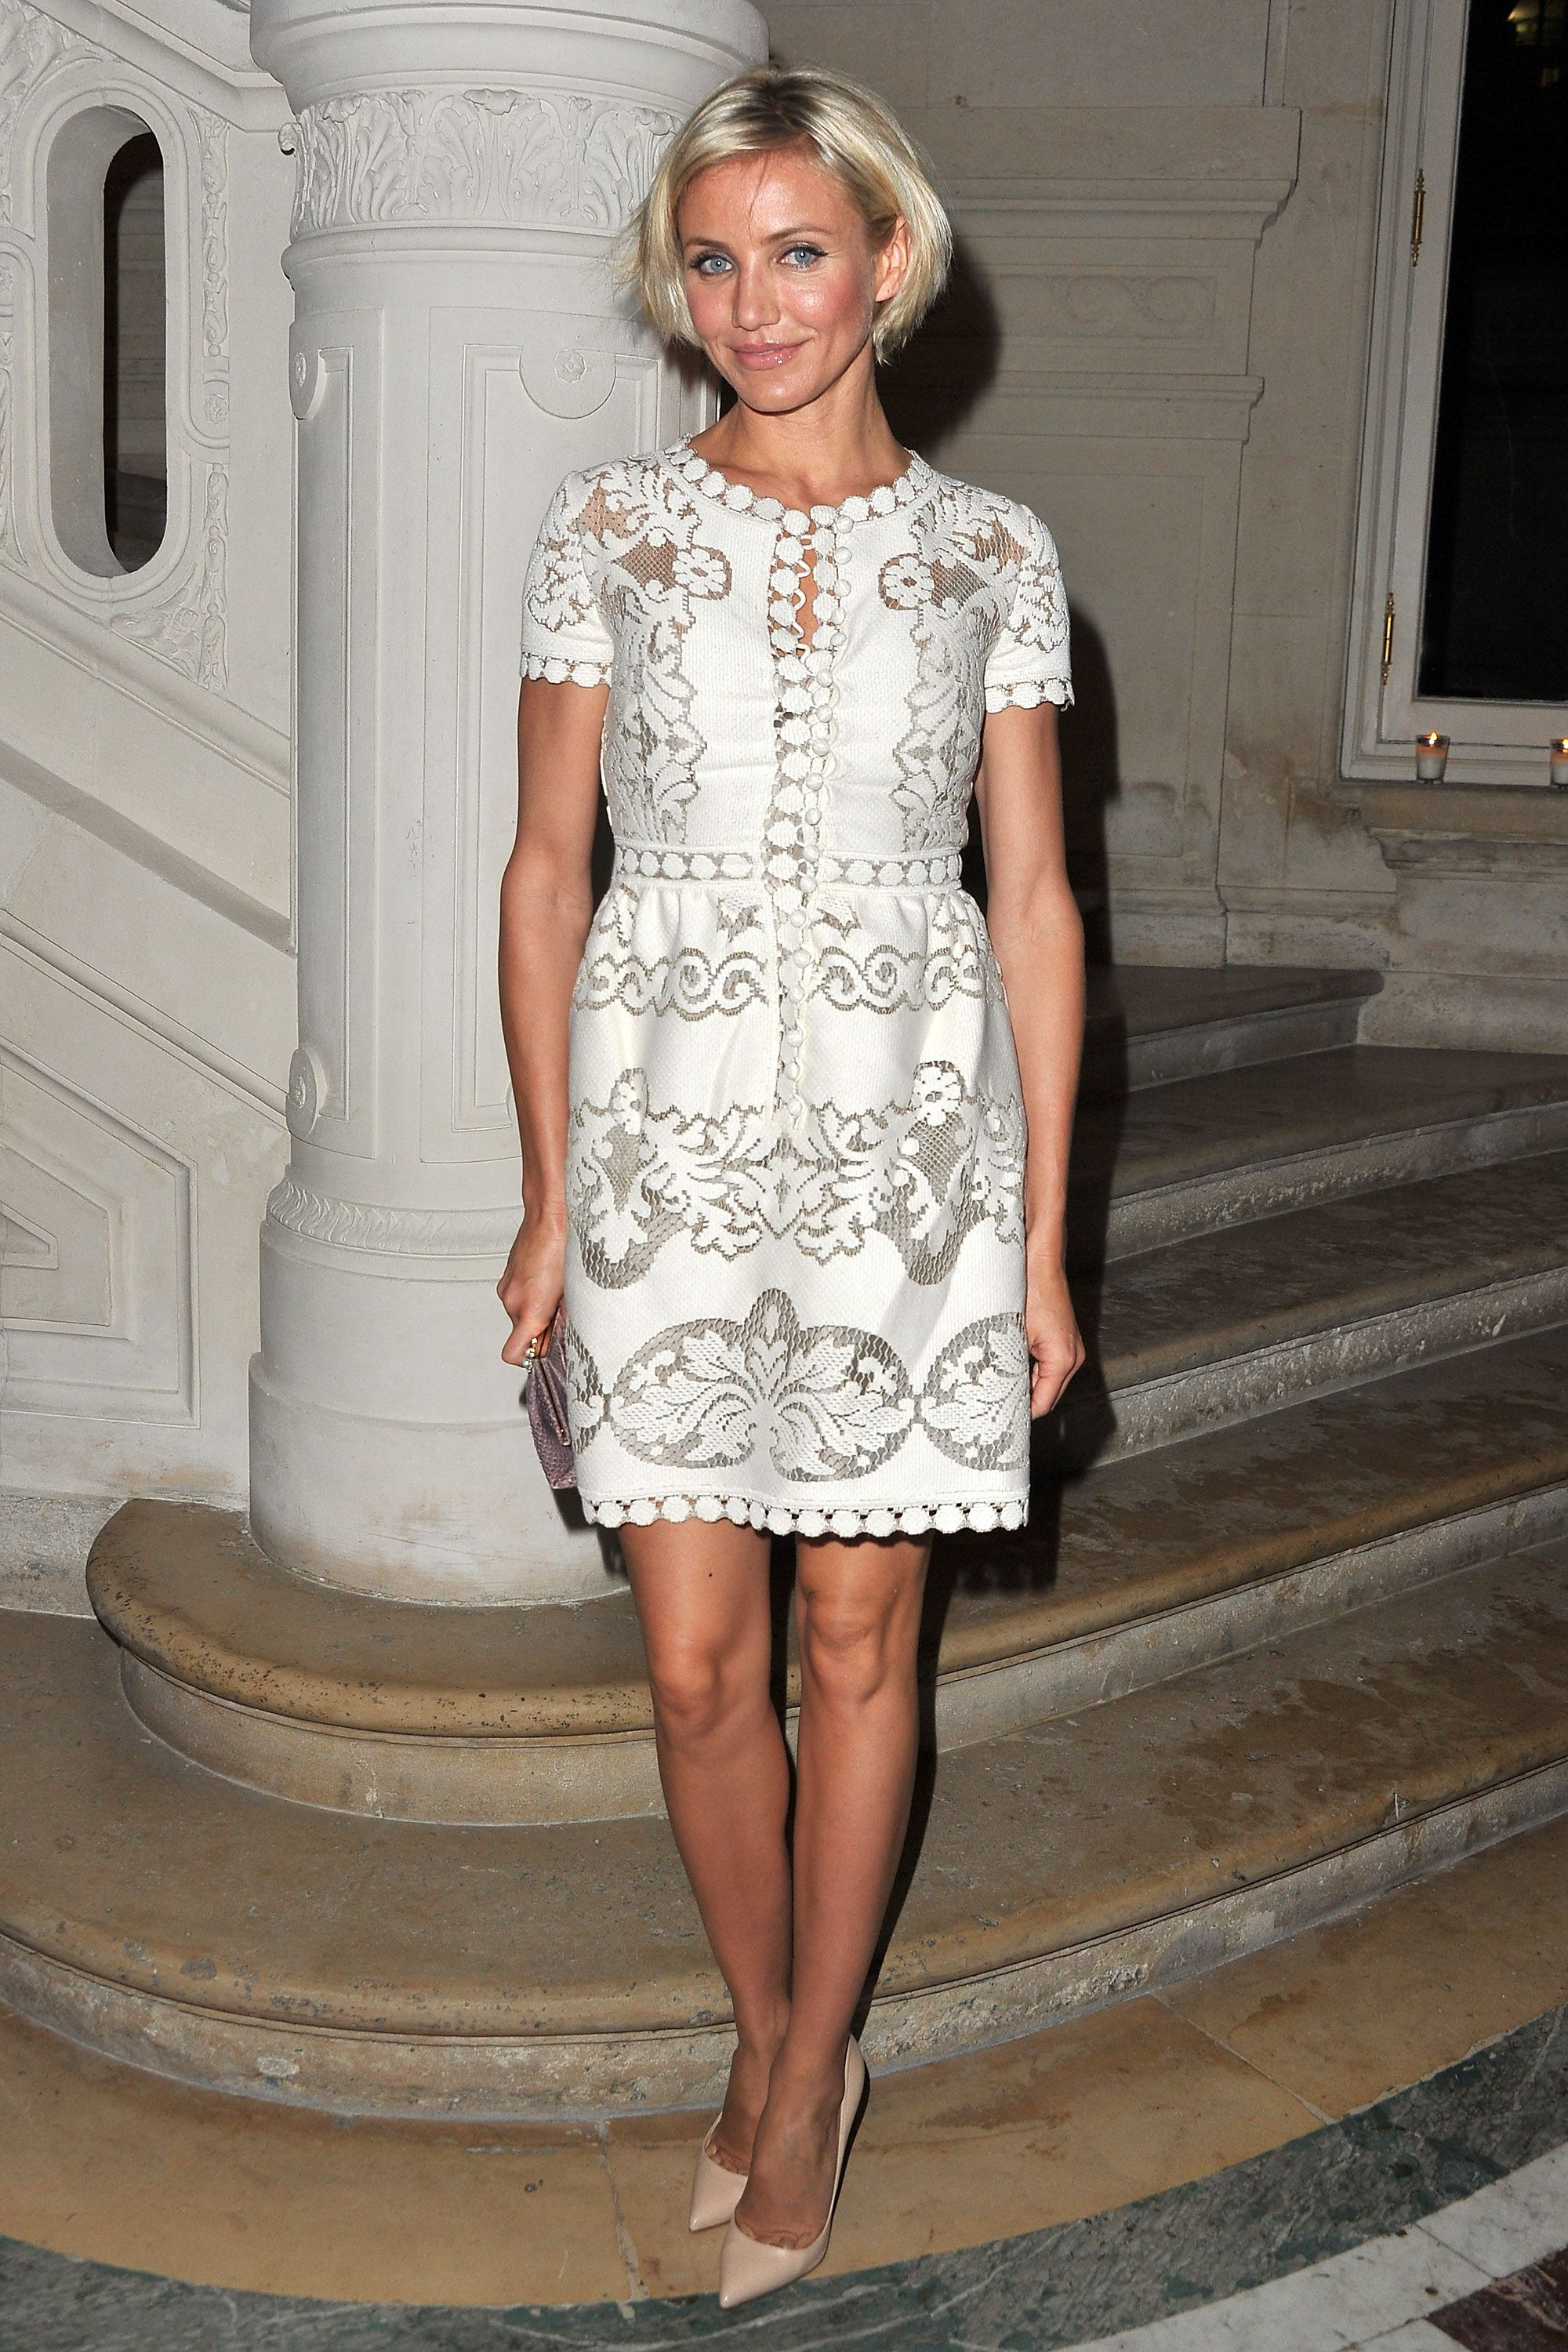 Fresh-faced Cameron Diaz keeps it youthful in a girly cream lace ...